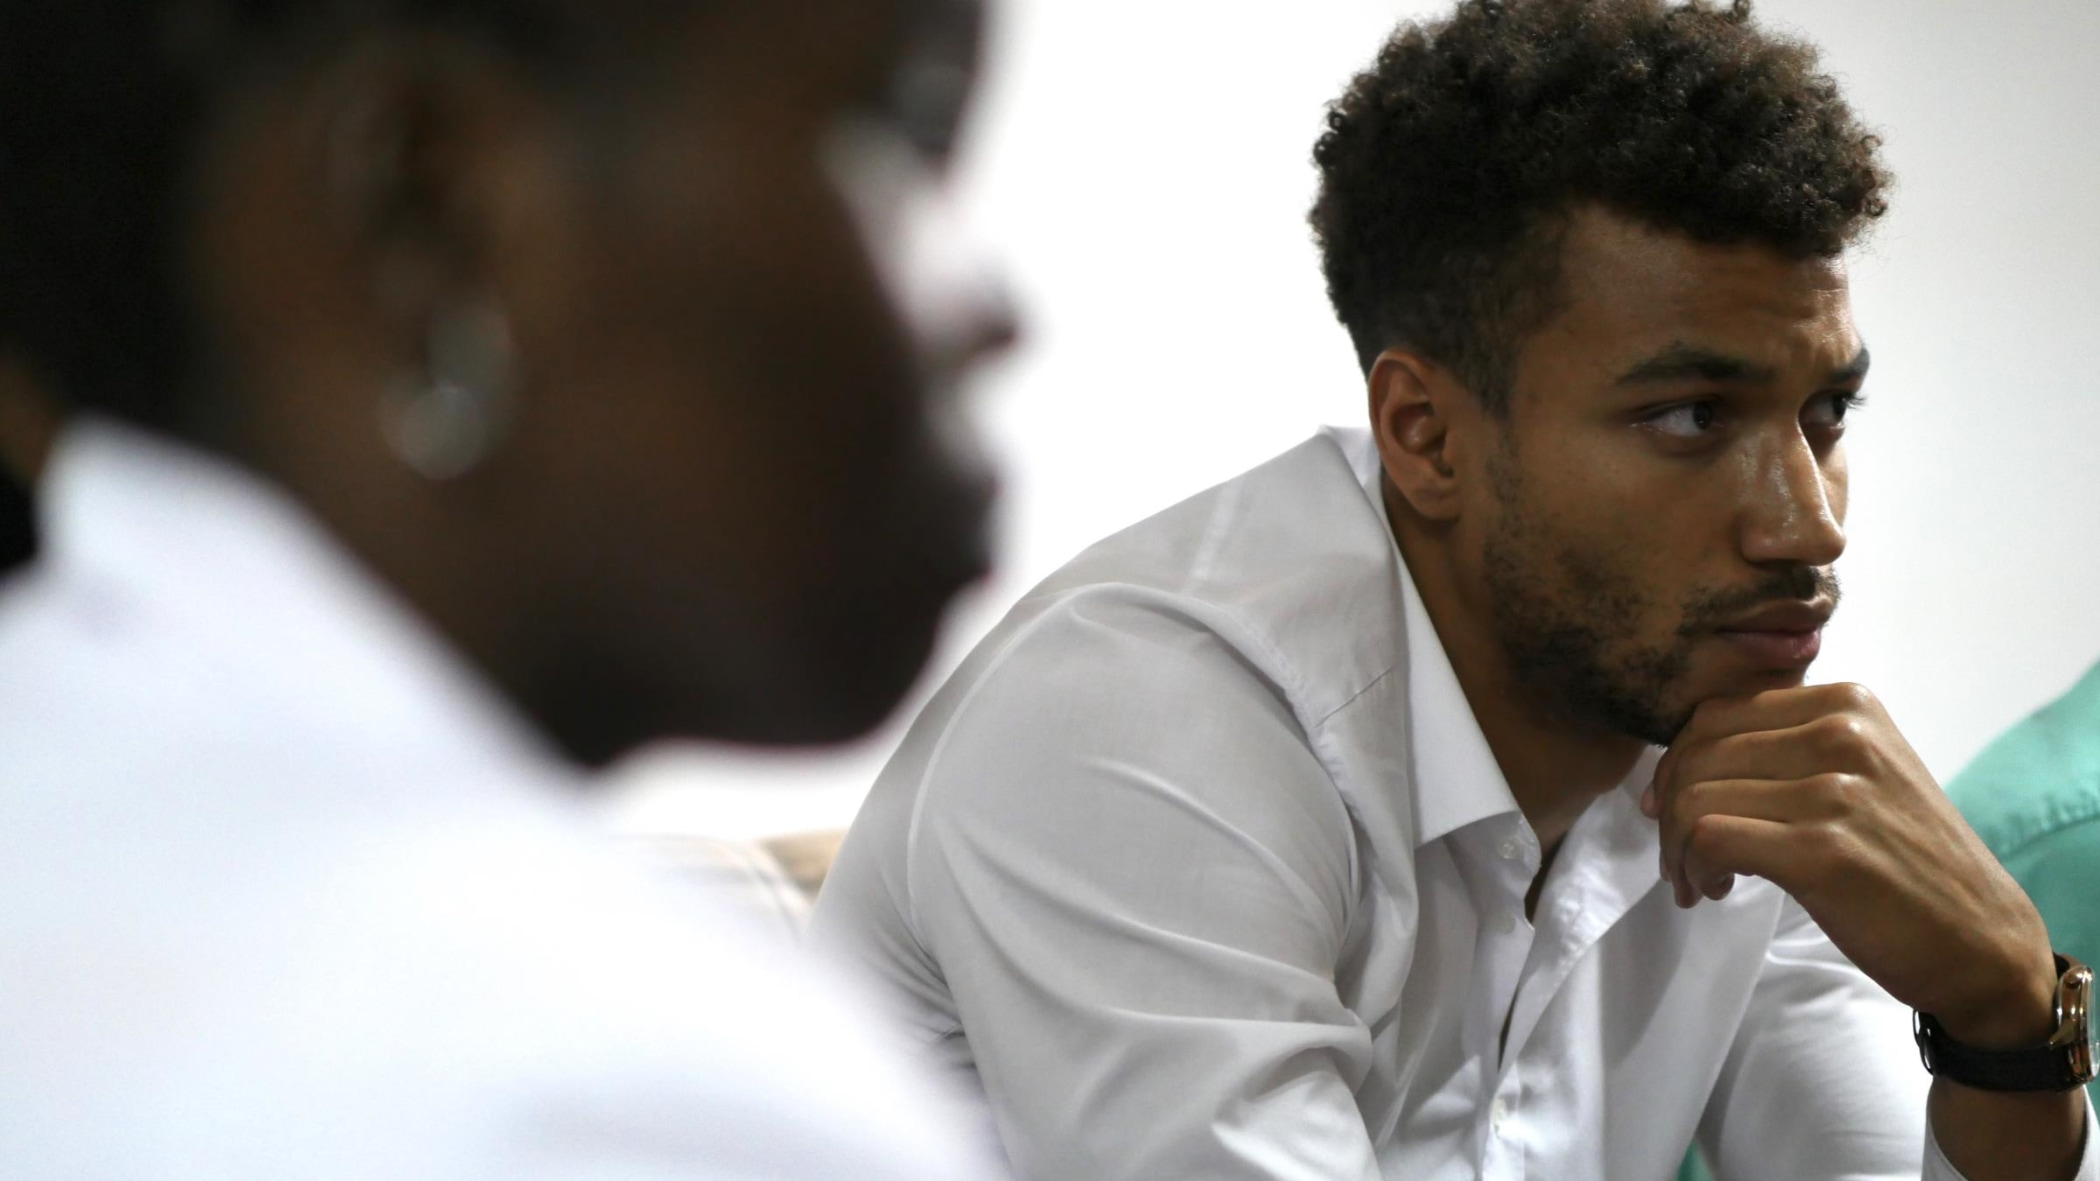 Jonathan Apasu, a visiting medical student from Germany, listening during a group discussion.